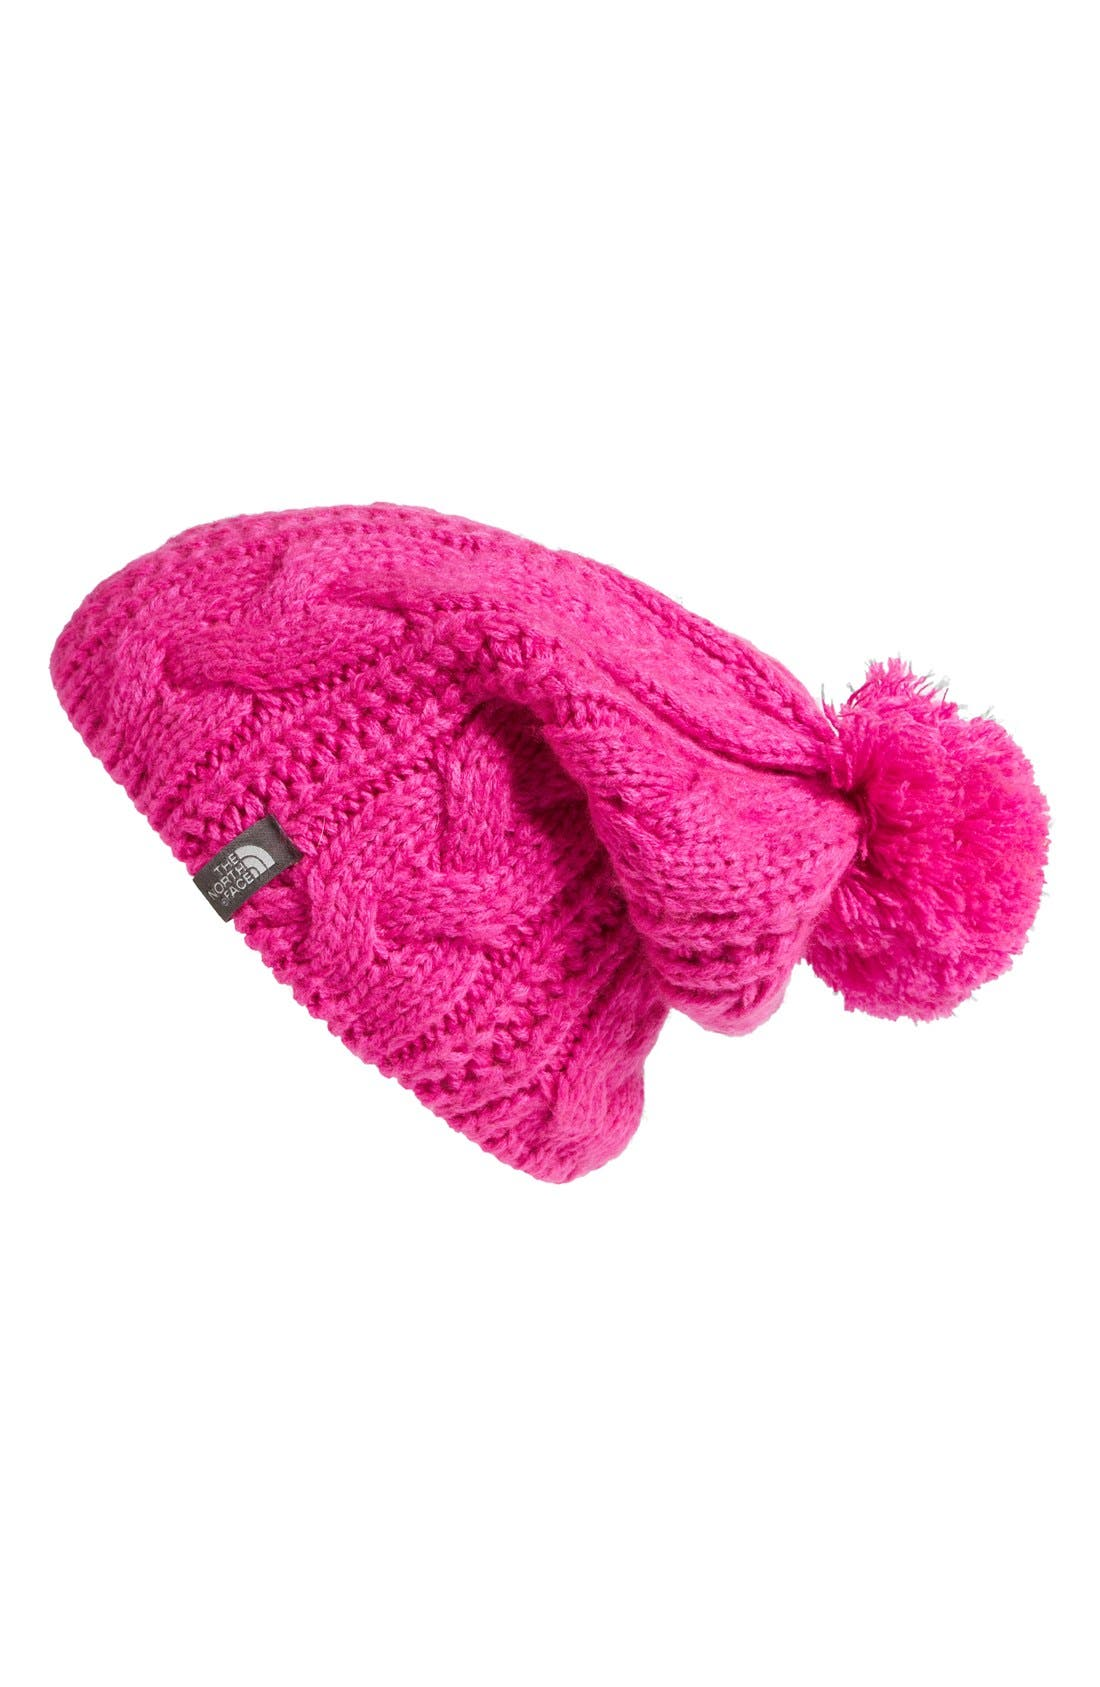 Main Image - The North Face 'Bigsby' Pompom Beanie